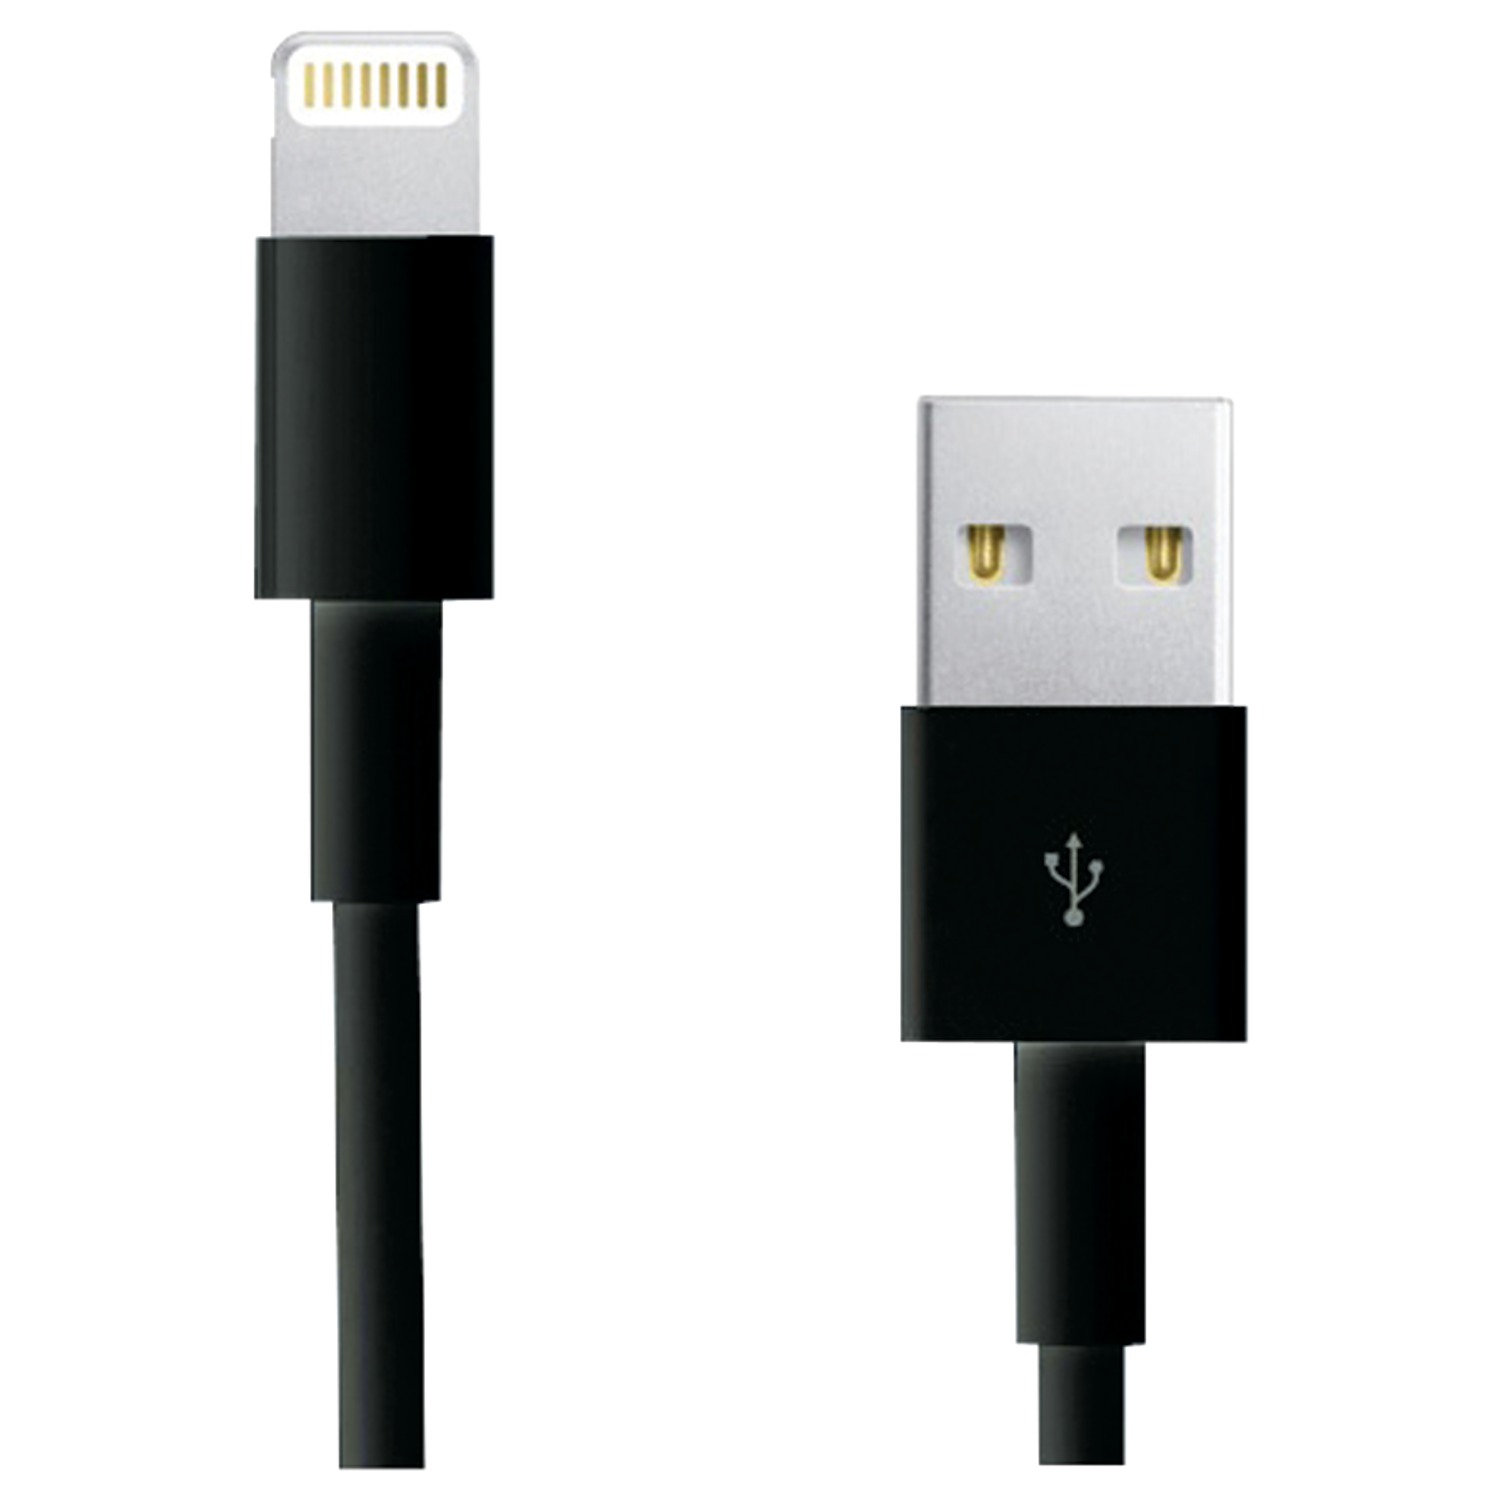 Rca Ah750br Lightning Tm To Usb Cable 3ft Black